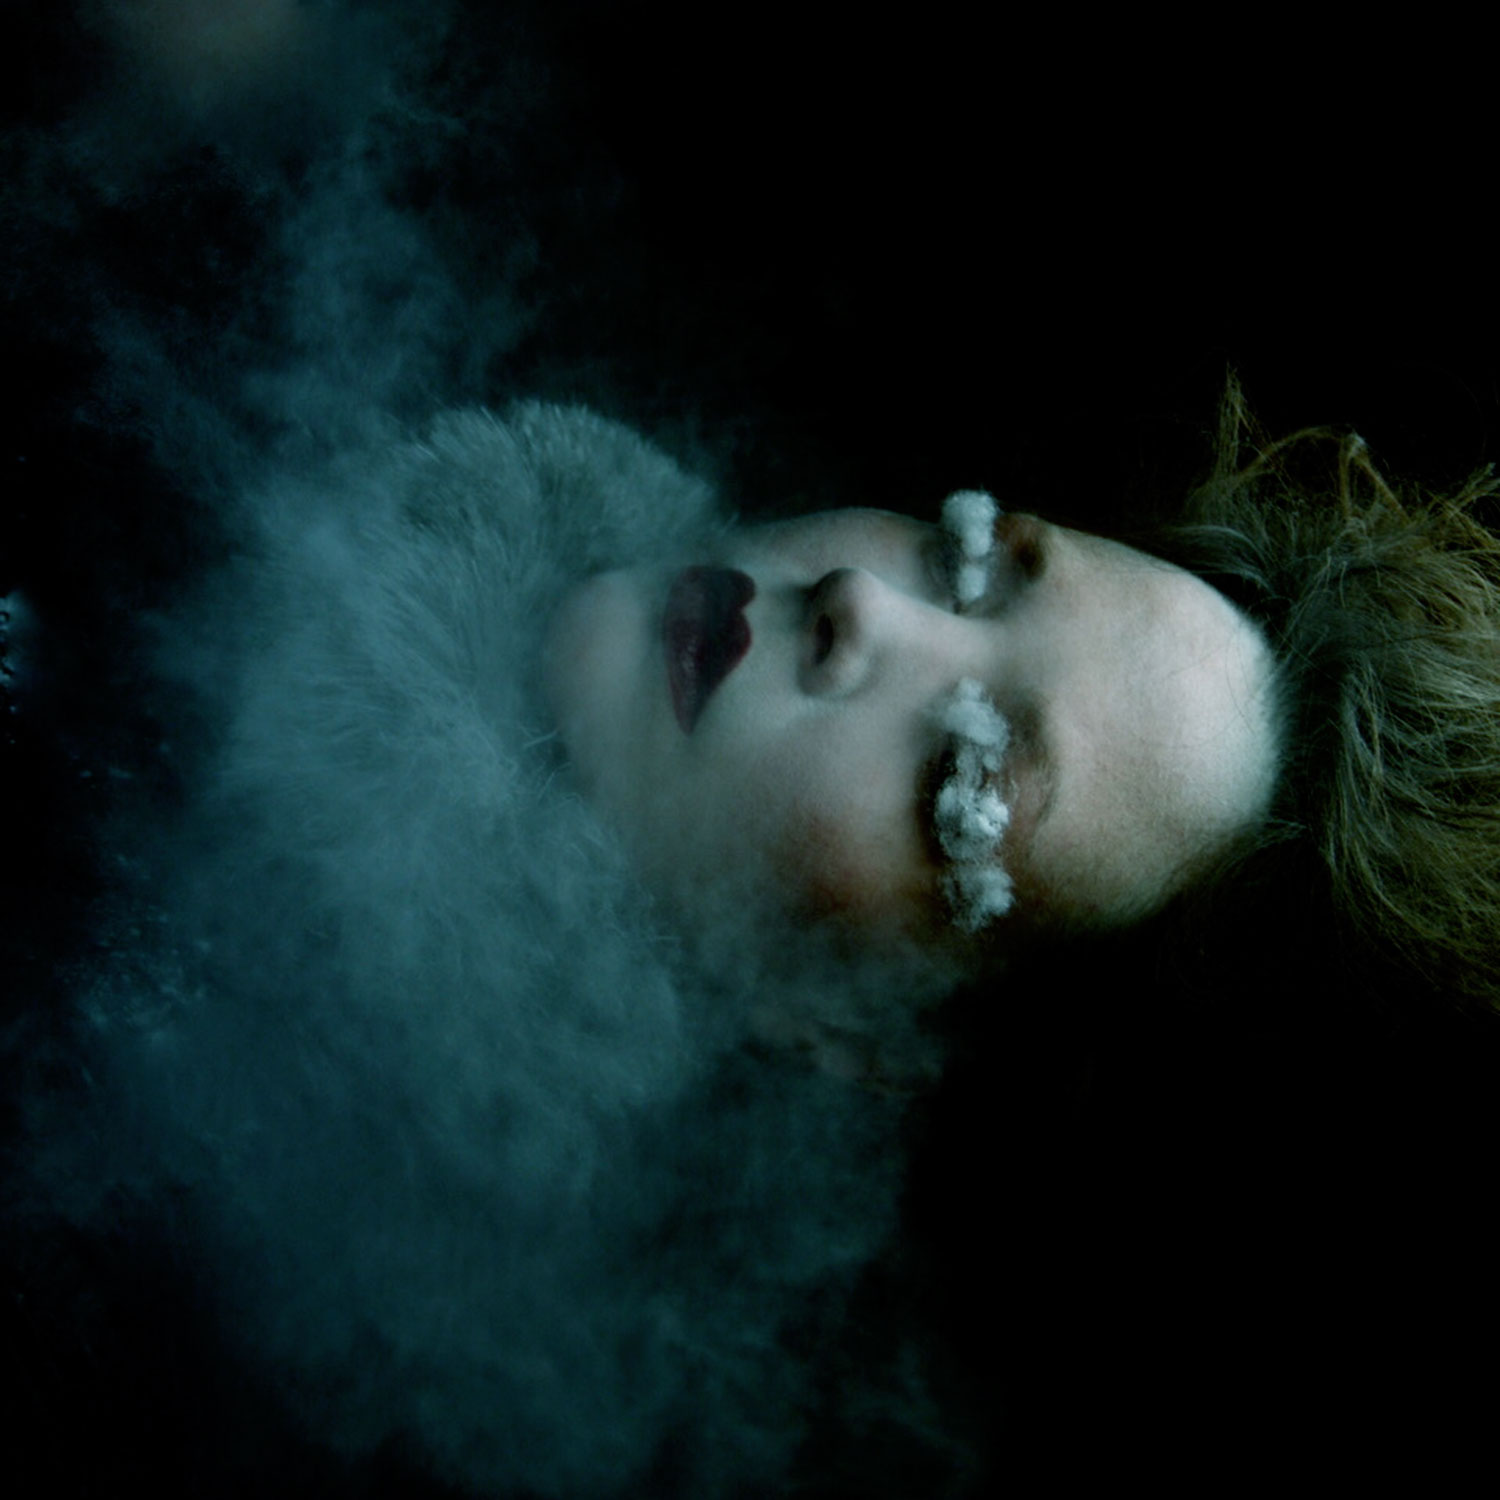 Helen Warner, Farewell Ice Queen - sleeping woman shrouded with smoke